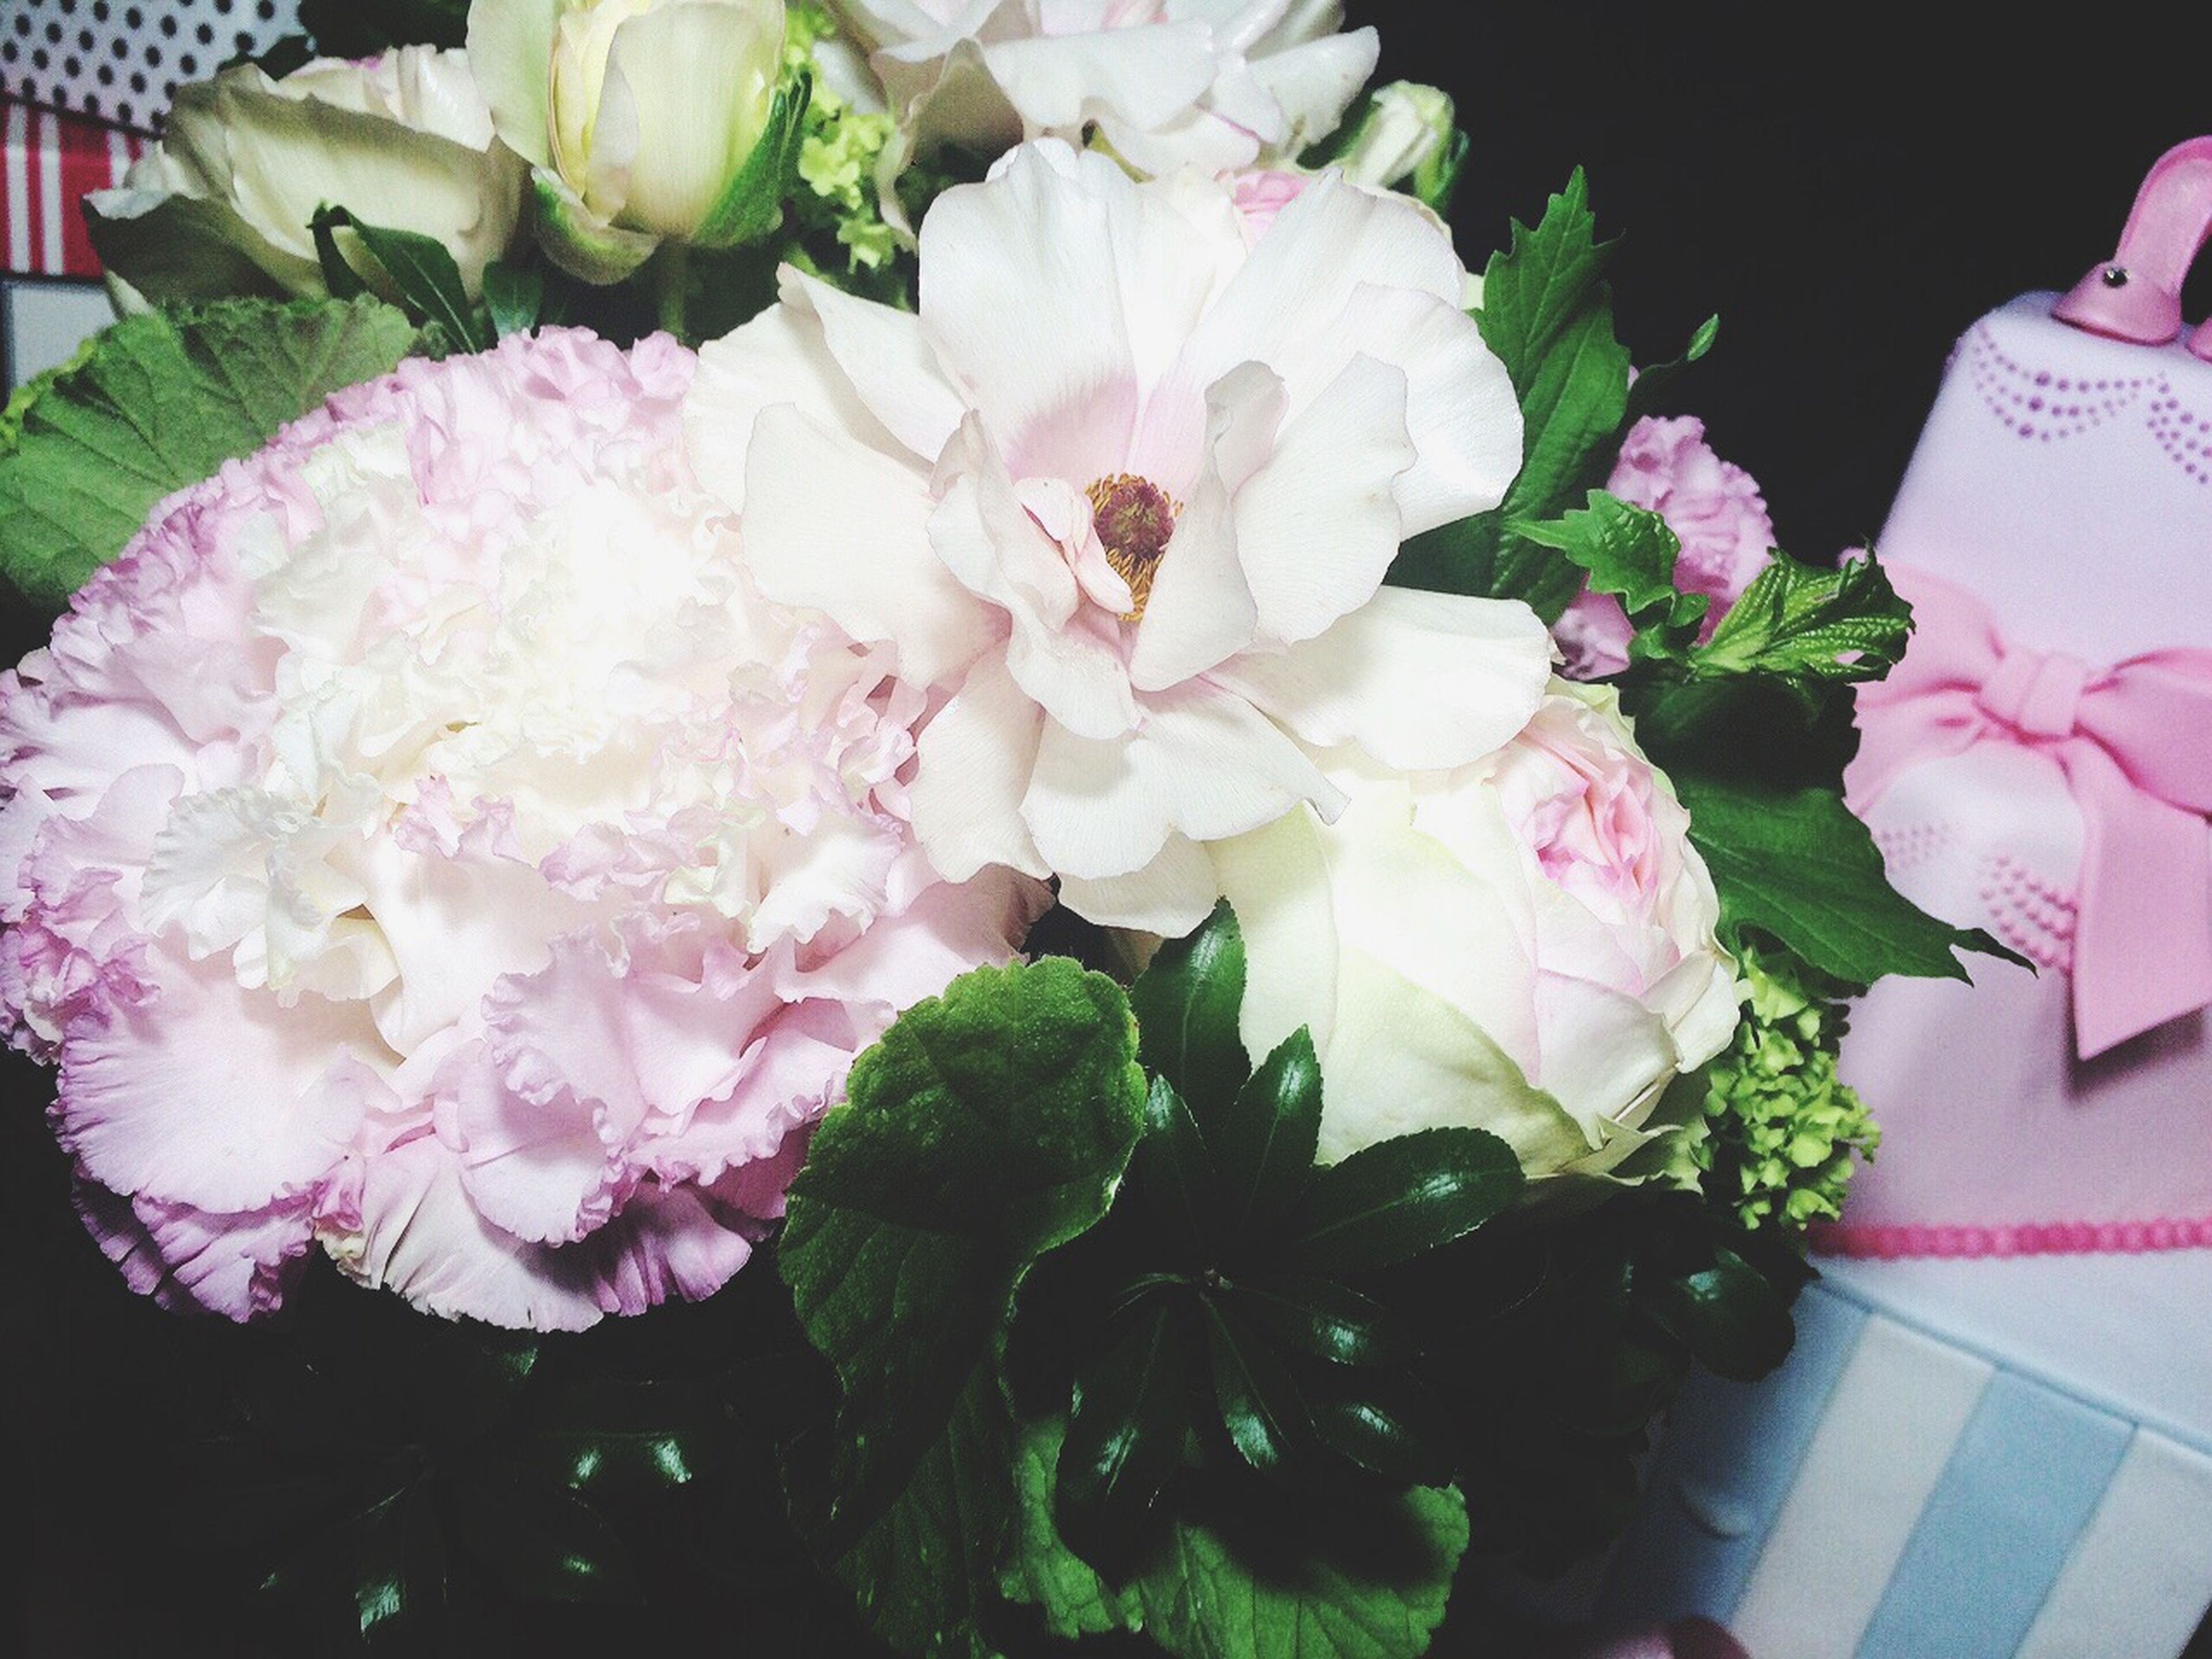 flower, freshness, petal, fragility, flower head, beauty in nature, indoors, bunch of flowers, bouquet, pink color, high angle view, growth, close-up, nature, plant, blooming, leaf, flower arrangement, rose - flower, no people